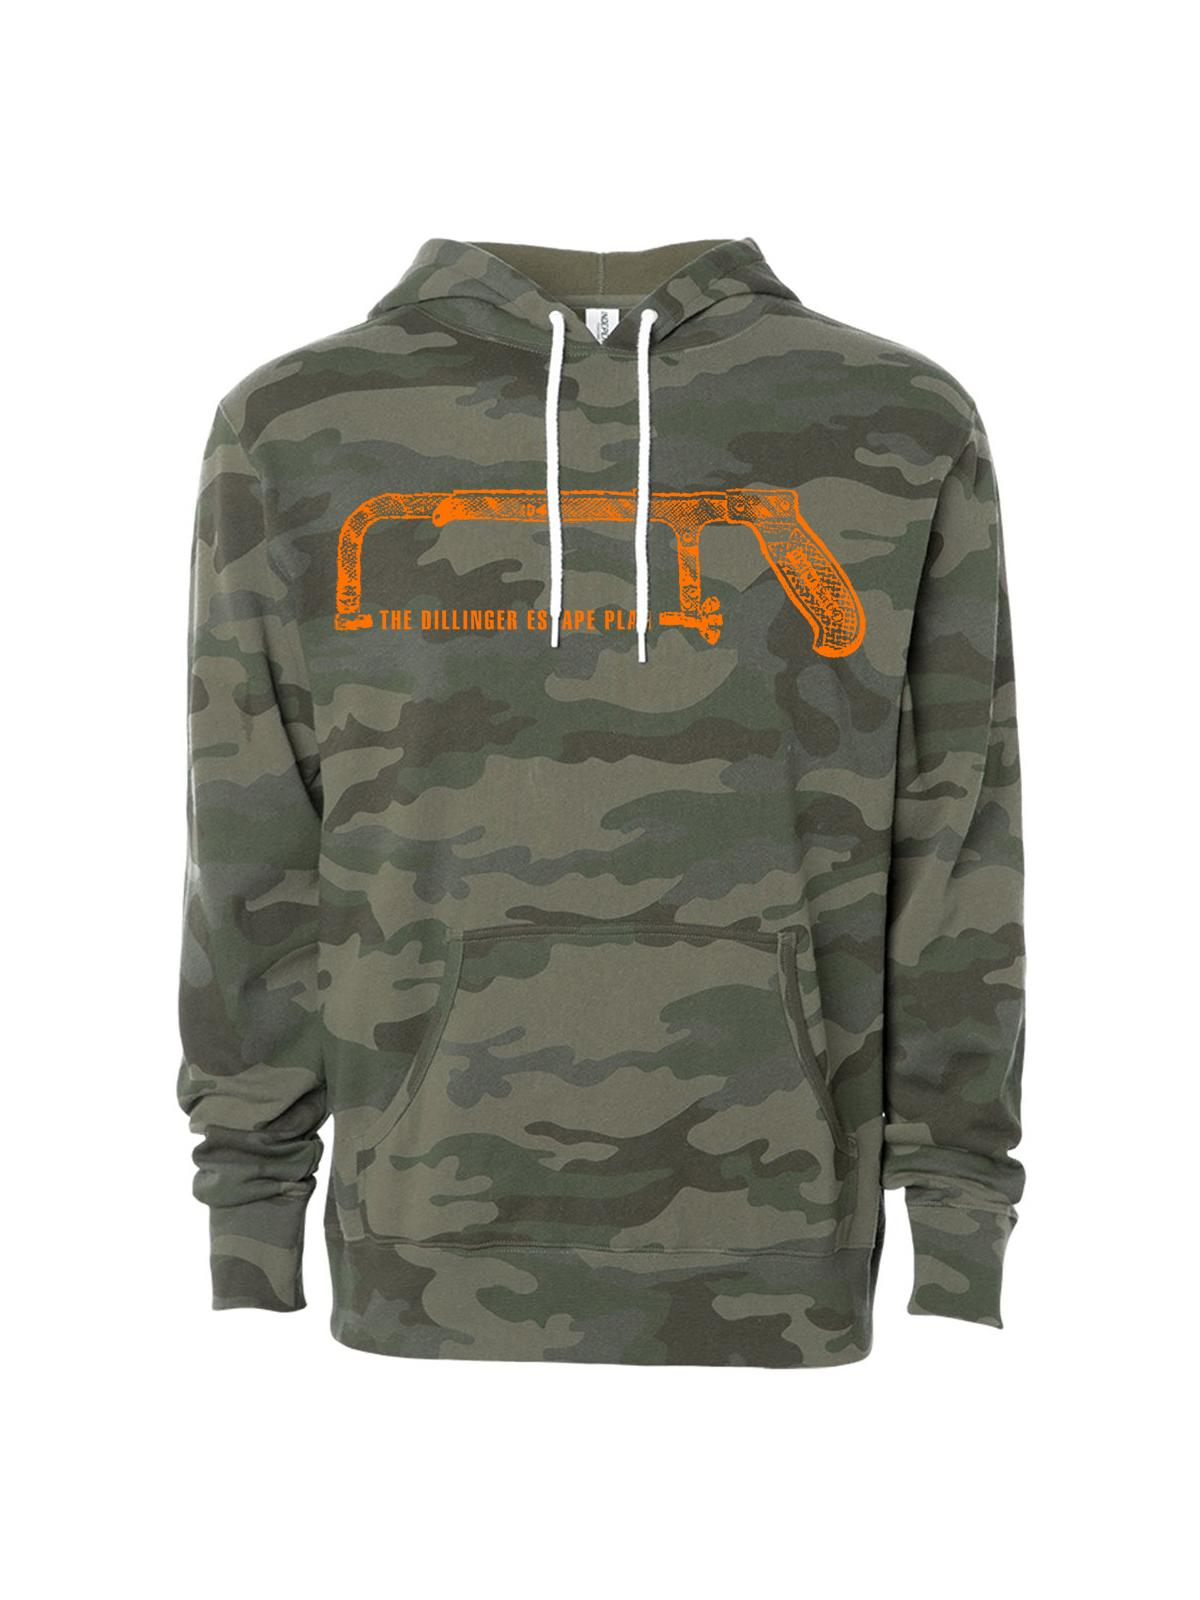 Dillinger Escape Plan - Hacksaw Camo Hoodie - Merch Limited